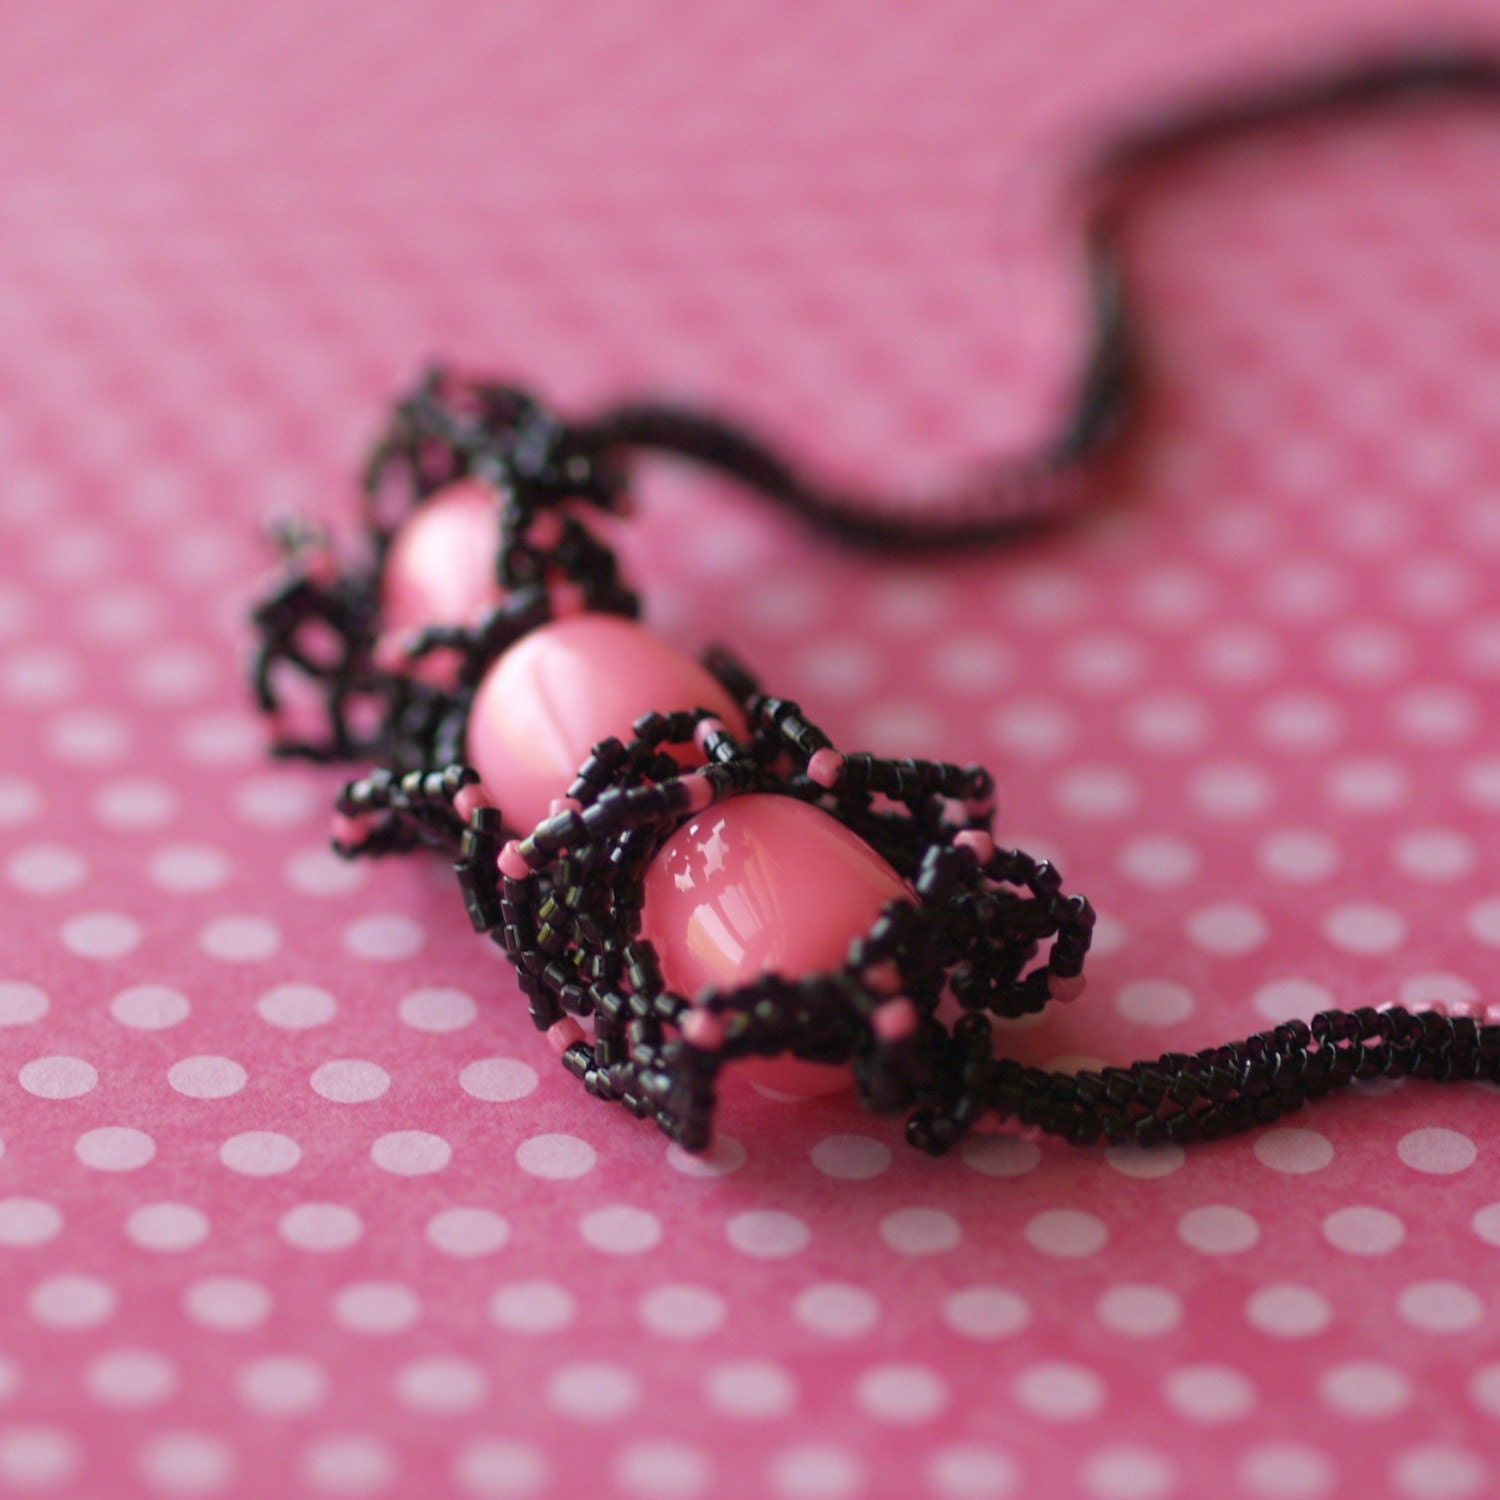 Bubblegum and Black Licorice - Funky Beadwoven Necklace (3010)